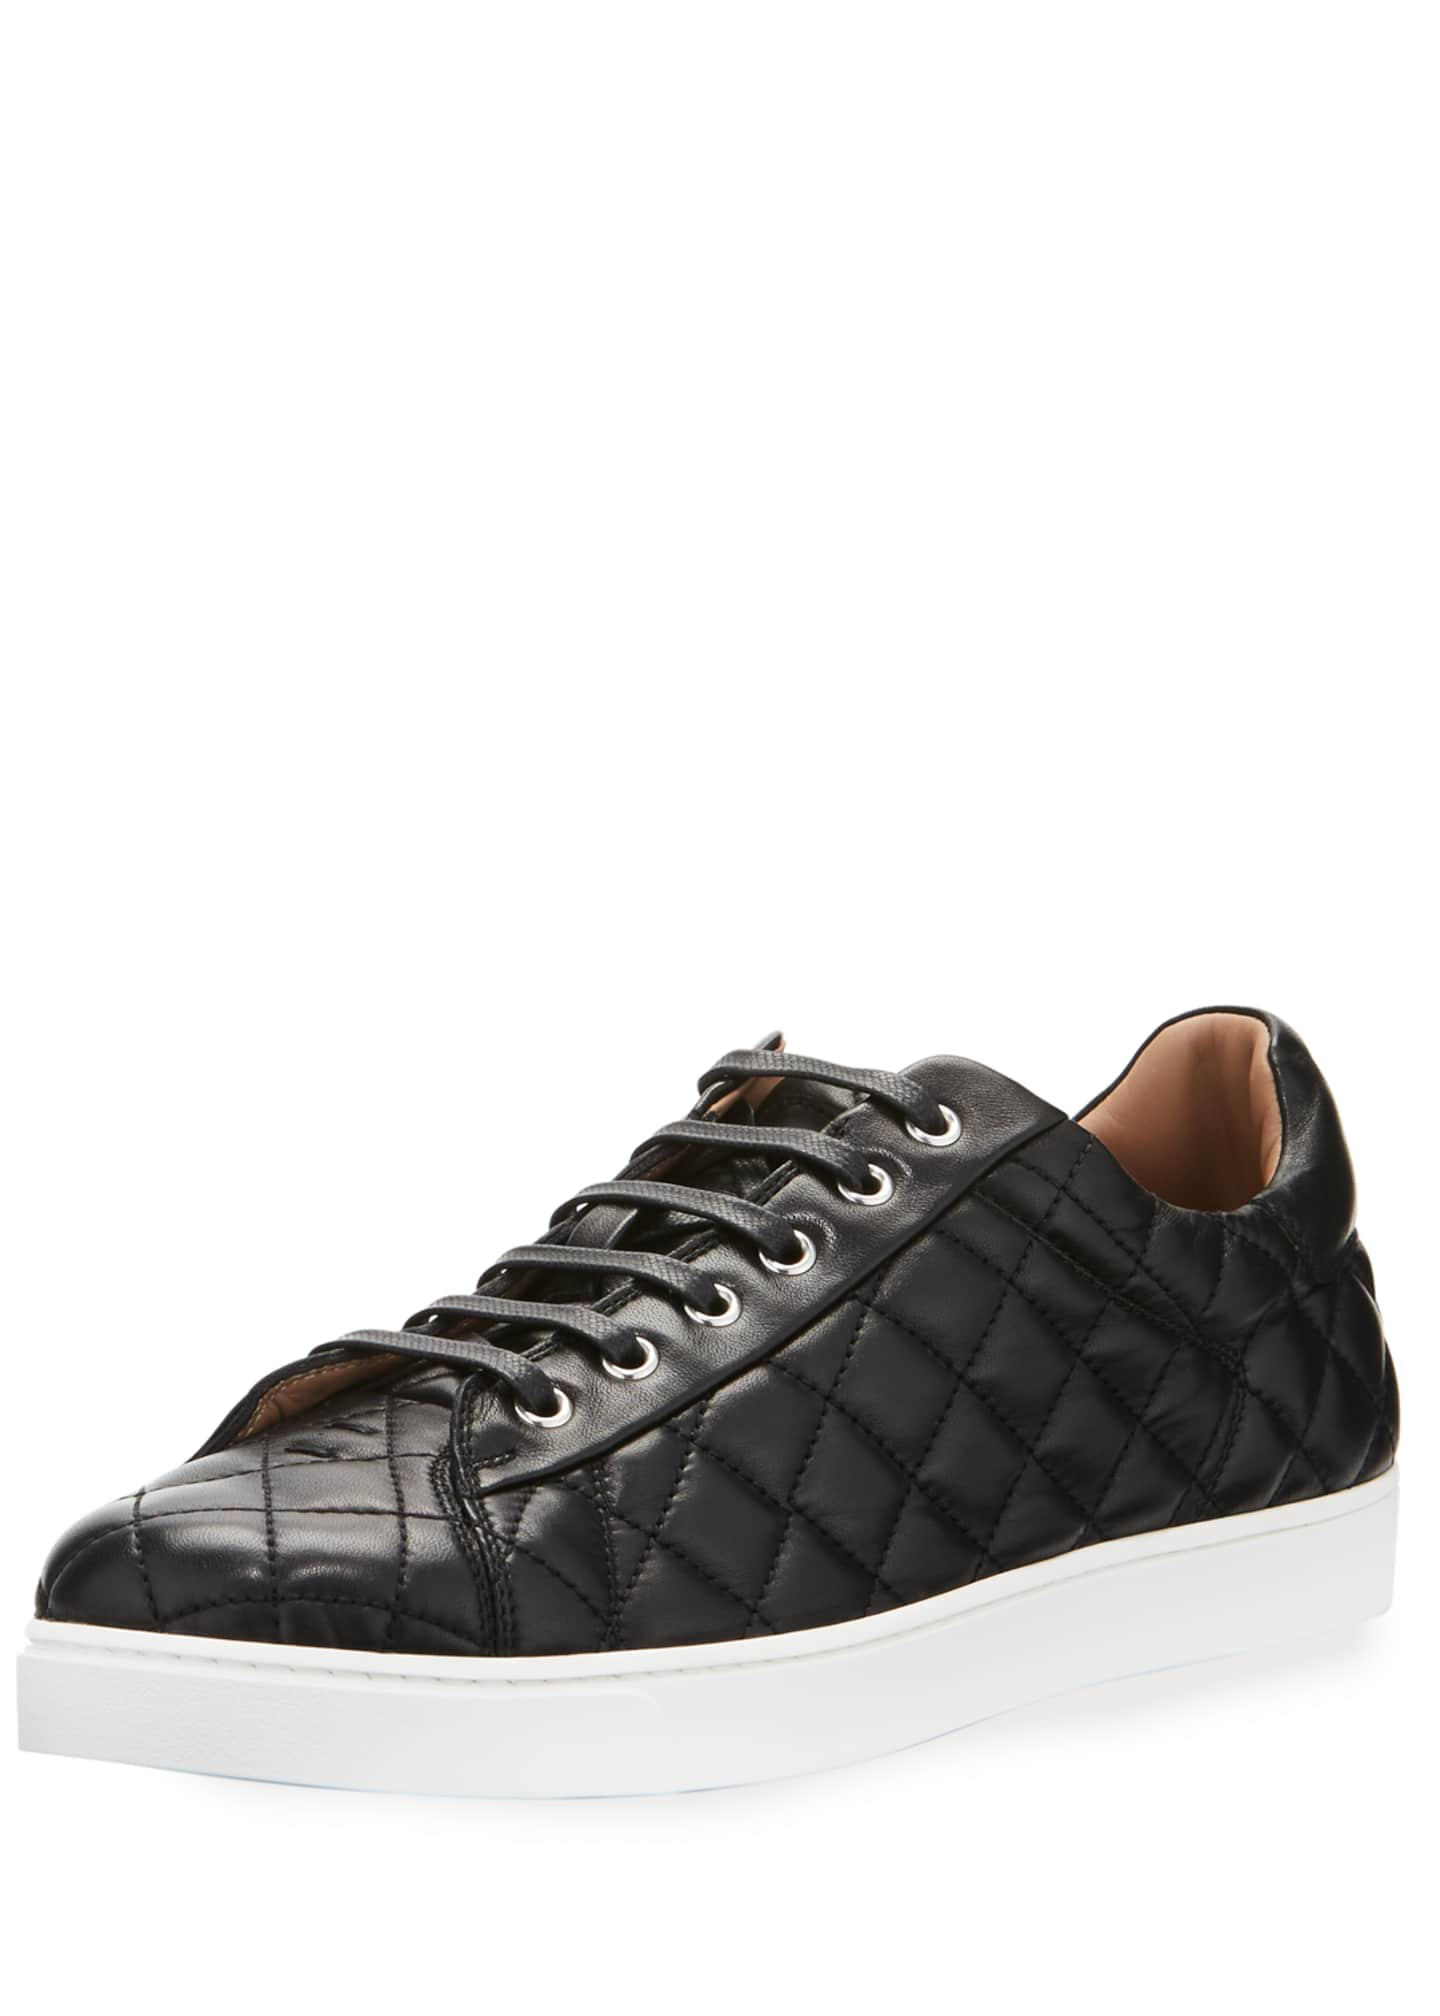 Gianvito Rossi Men's Quilted Leather Low-Top Sneakers, Black